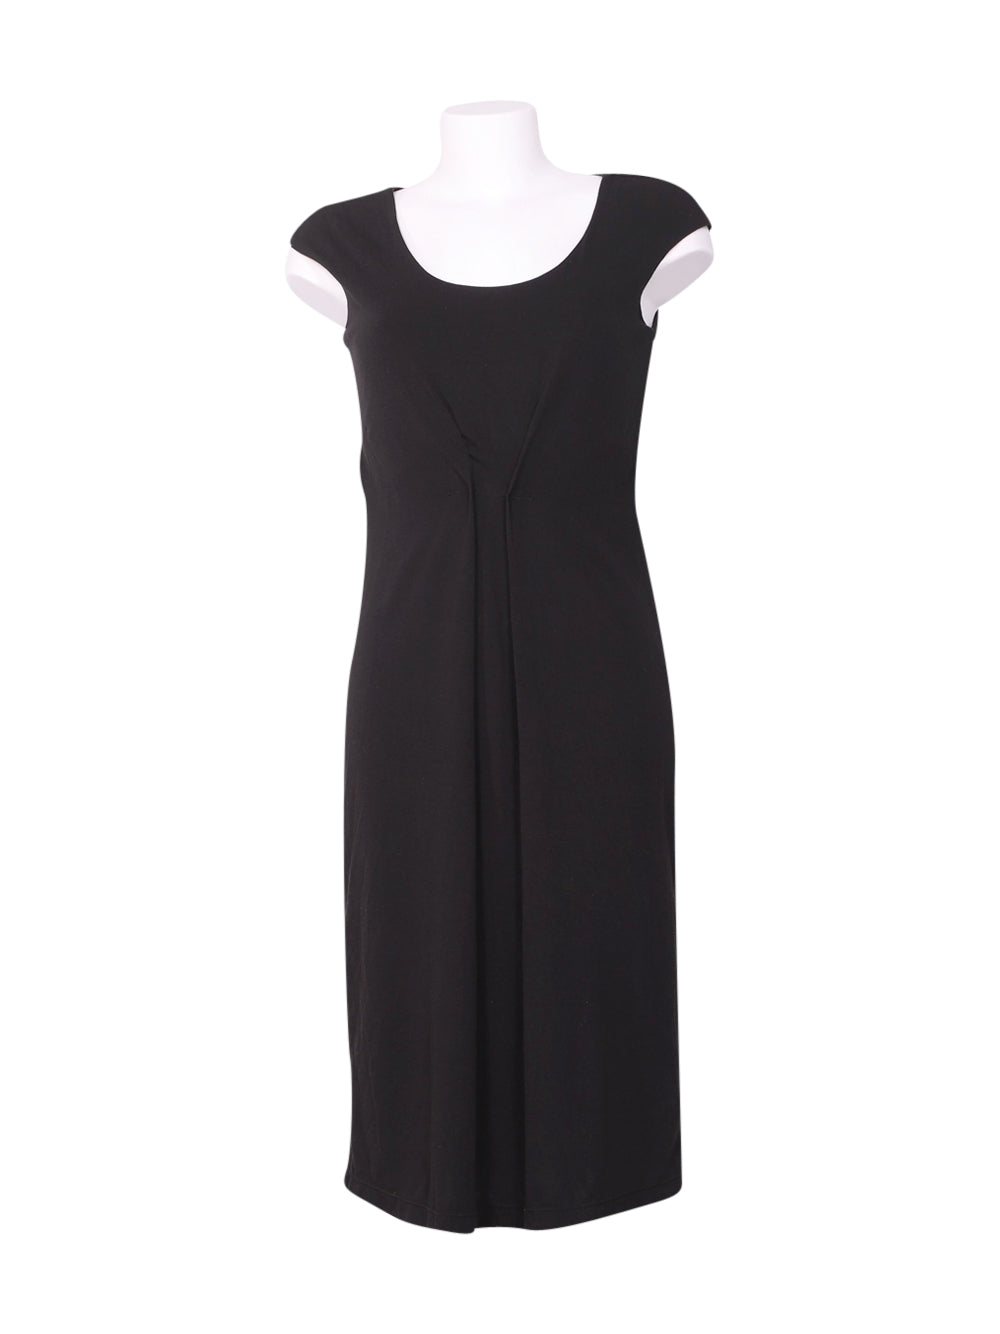 Front photo of Preloved Mexx Black Woman's dress - size 10/M